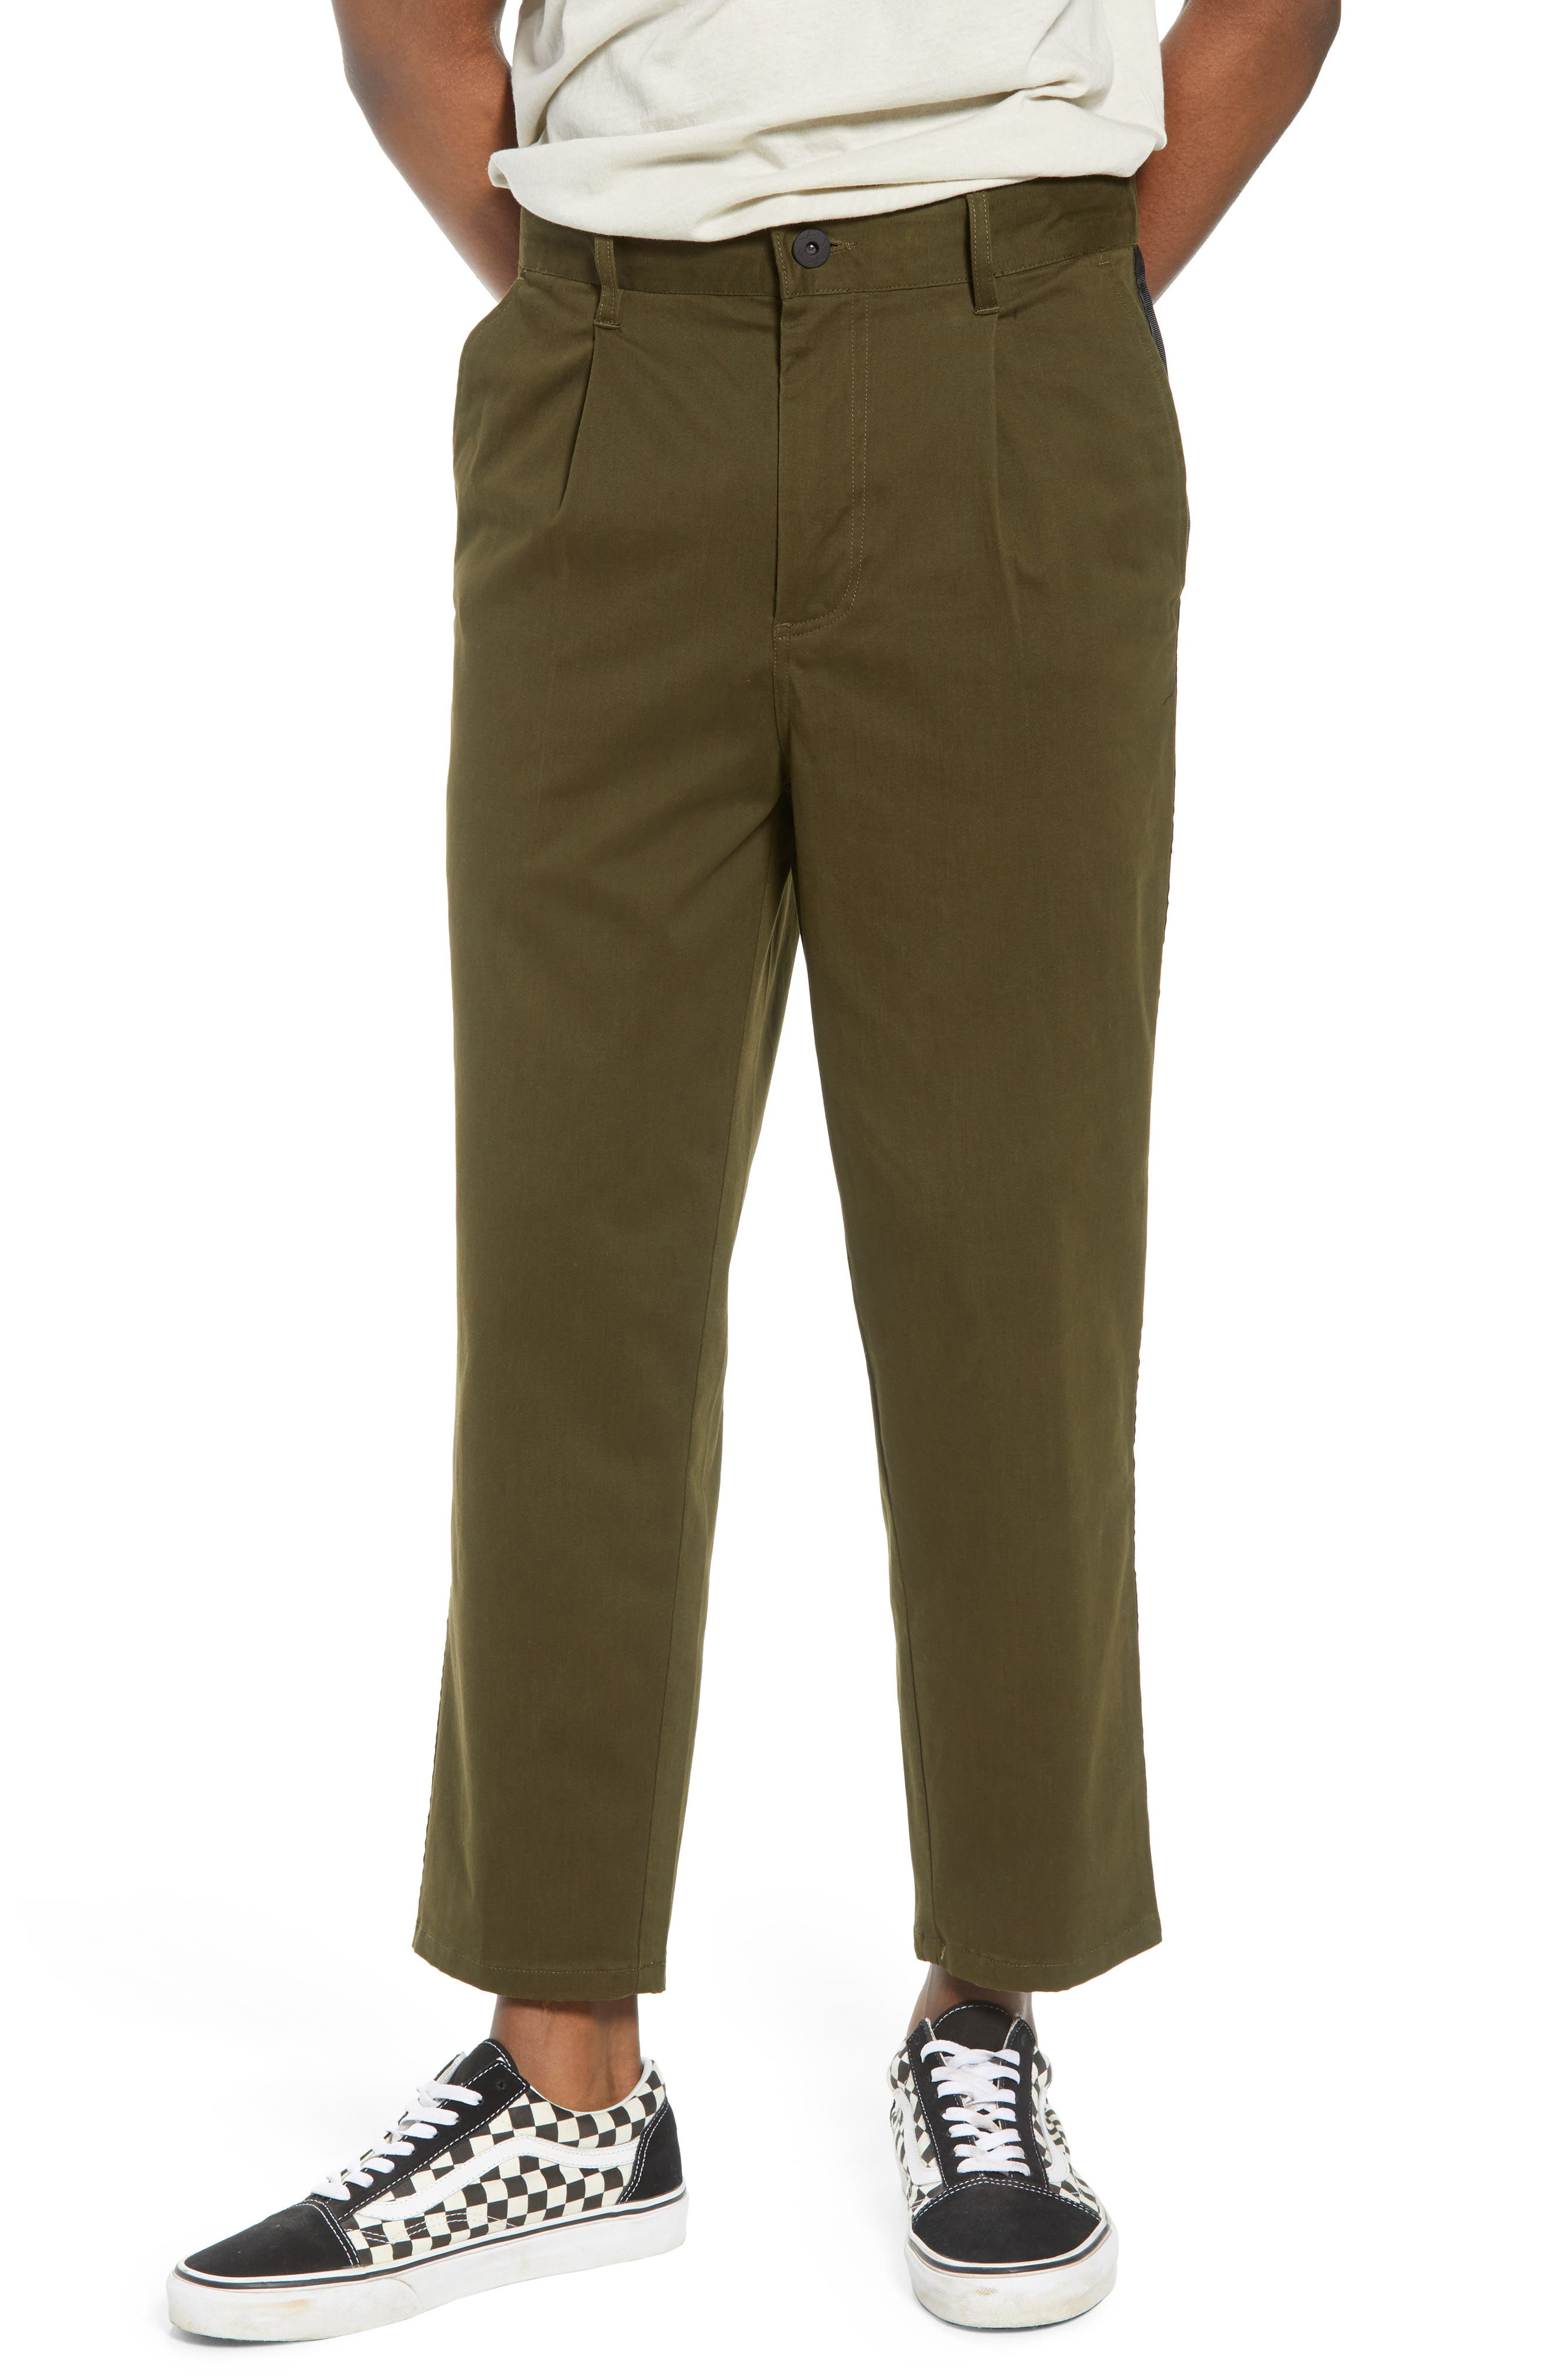 Lincoln Relaxed Fit Pants,                         Main,                         color, Olive